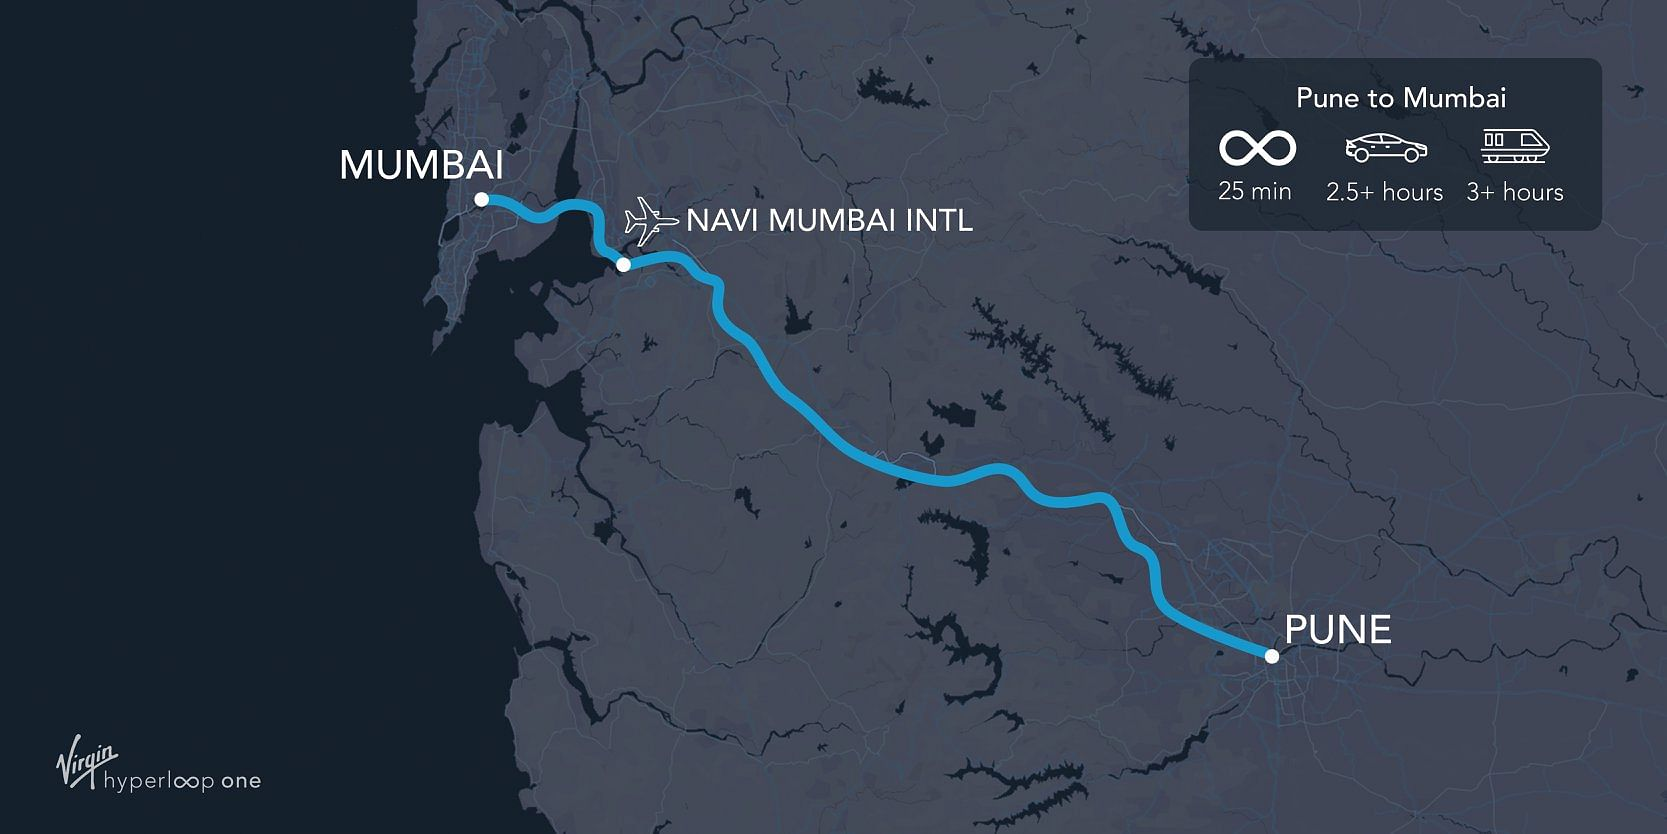 New technology promises Mumbai-Pune trip in 20 minutes